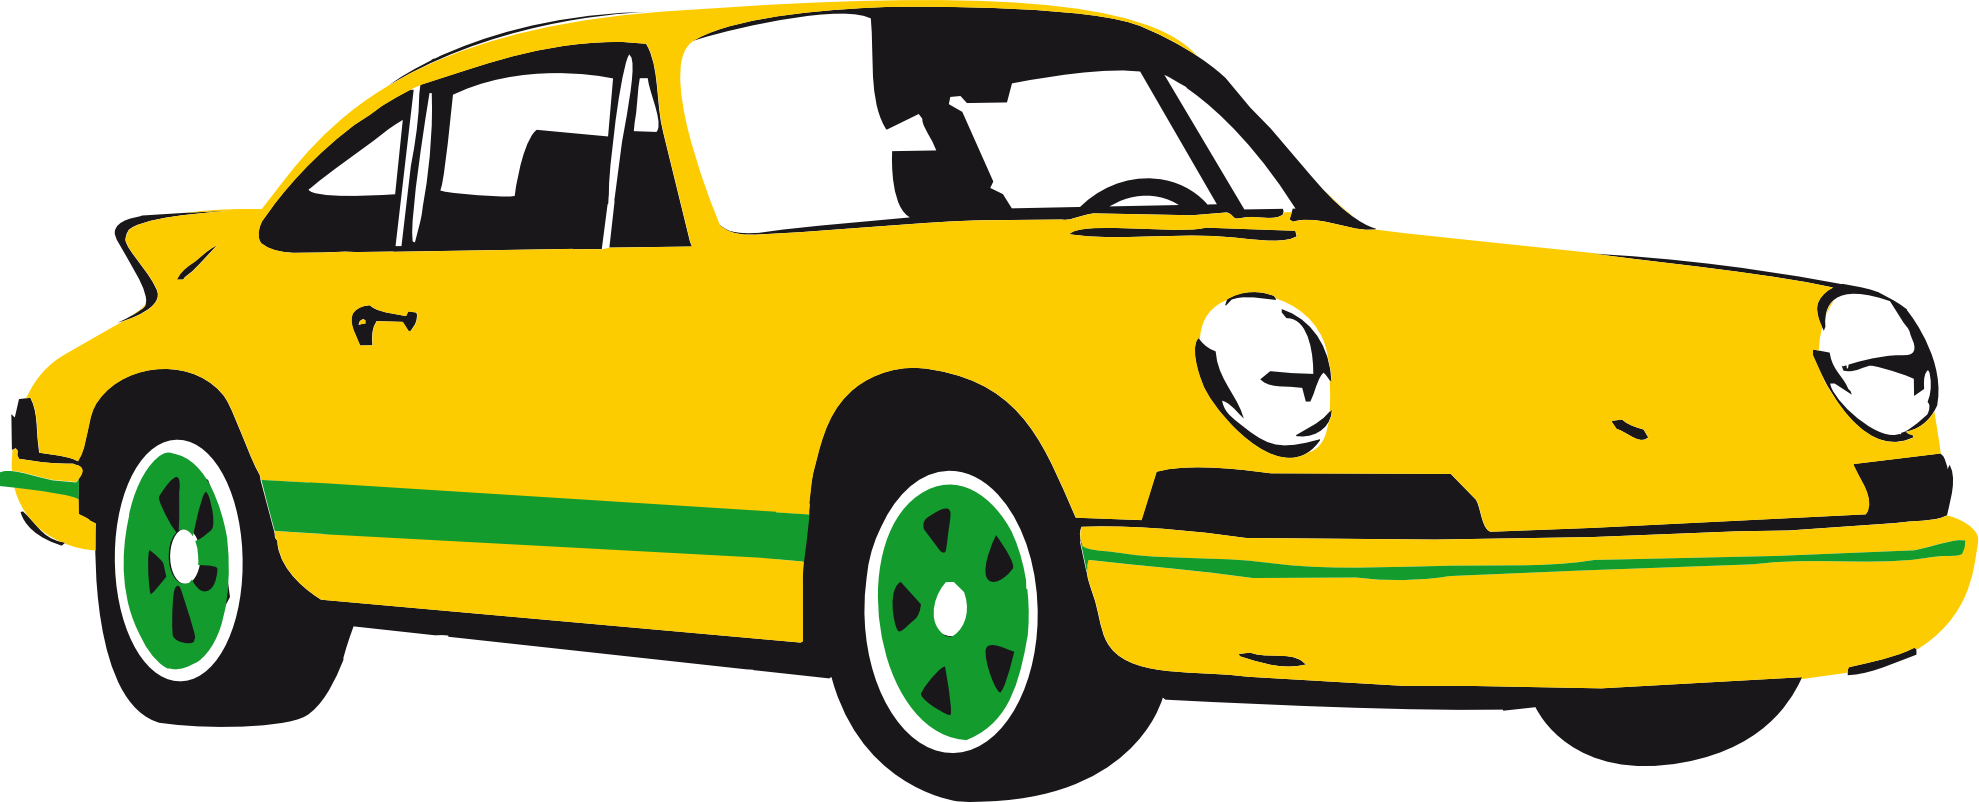 Cars vector png. Front side of porsche